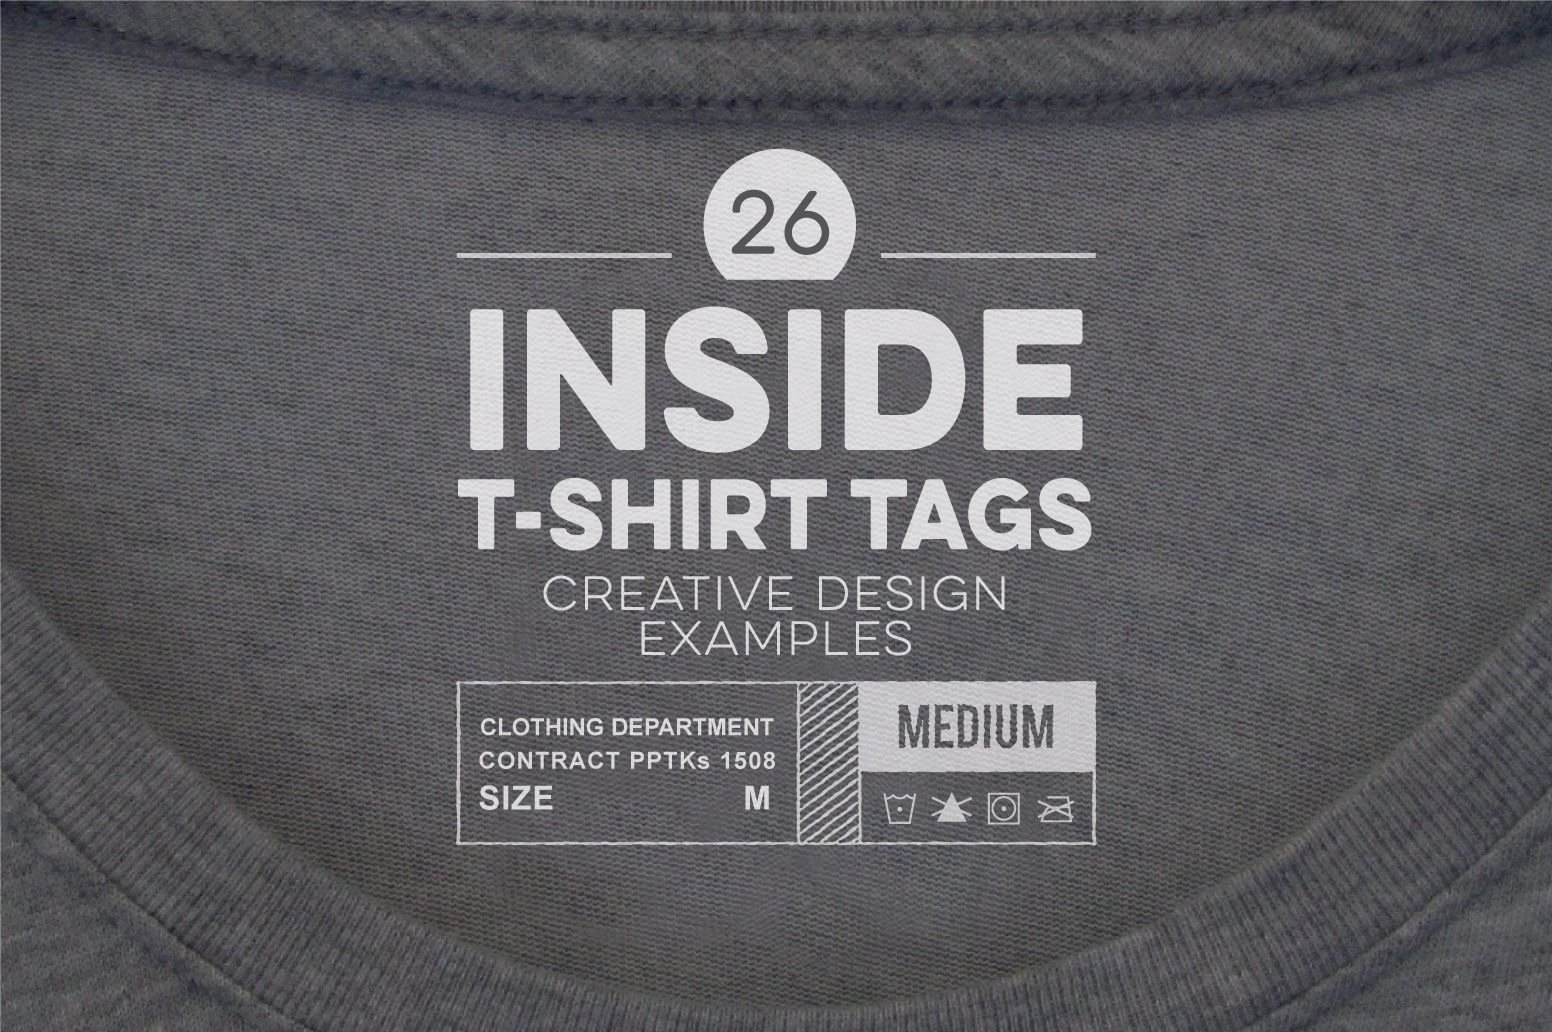 T Shirt Tag Template New 26 Inside T Shirt Tags Creative Design Examples 1552